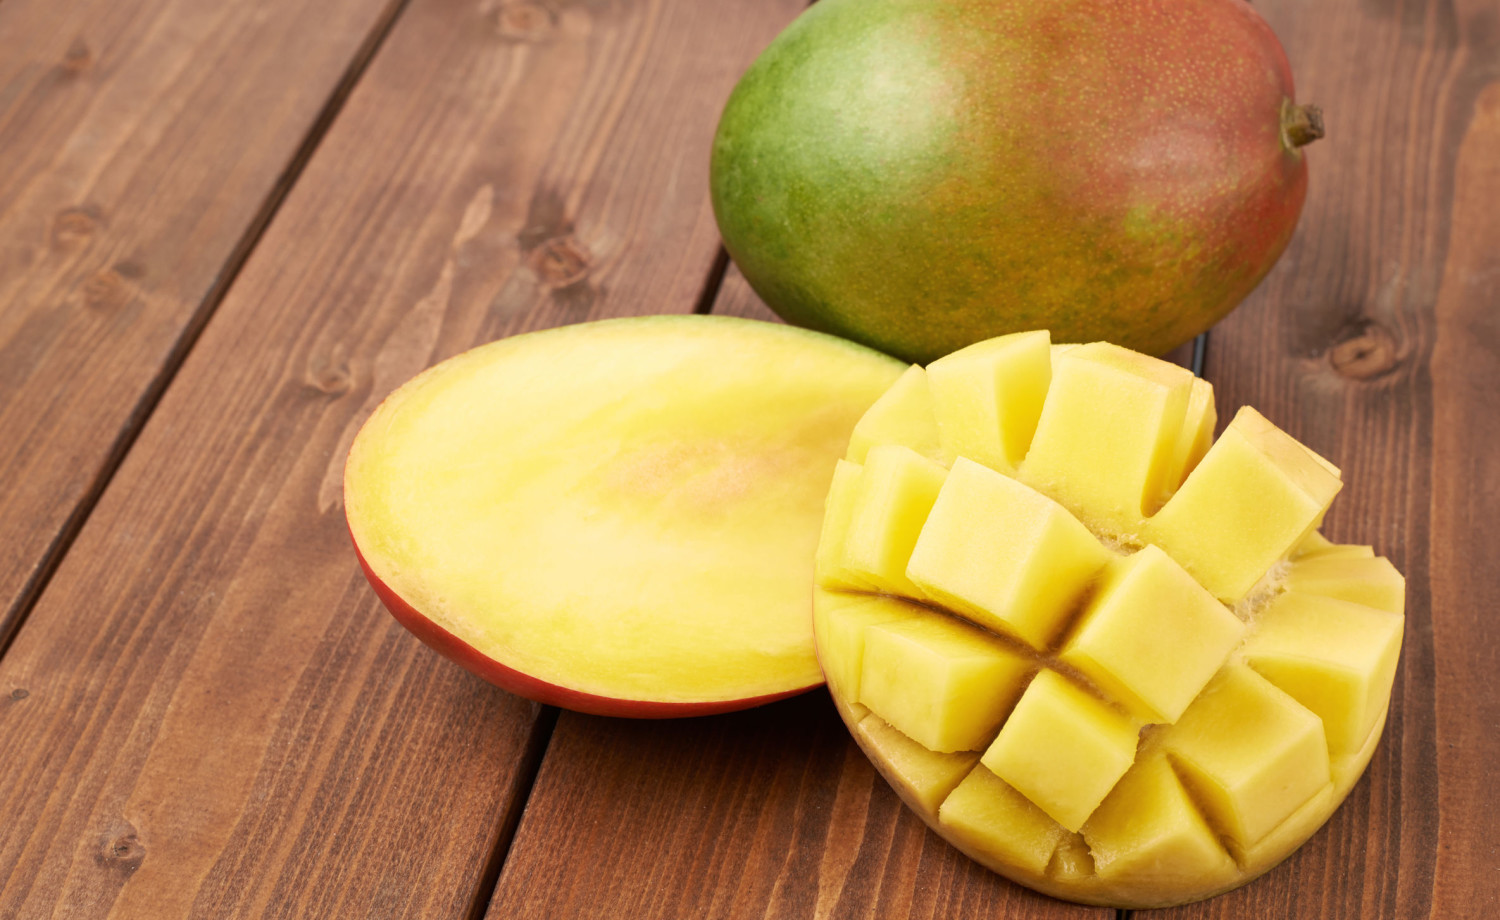 Ripe mango fruit lying over the brown colored wooden board surface as a background composition